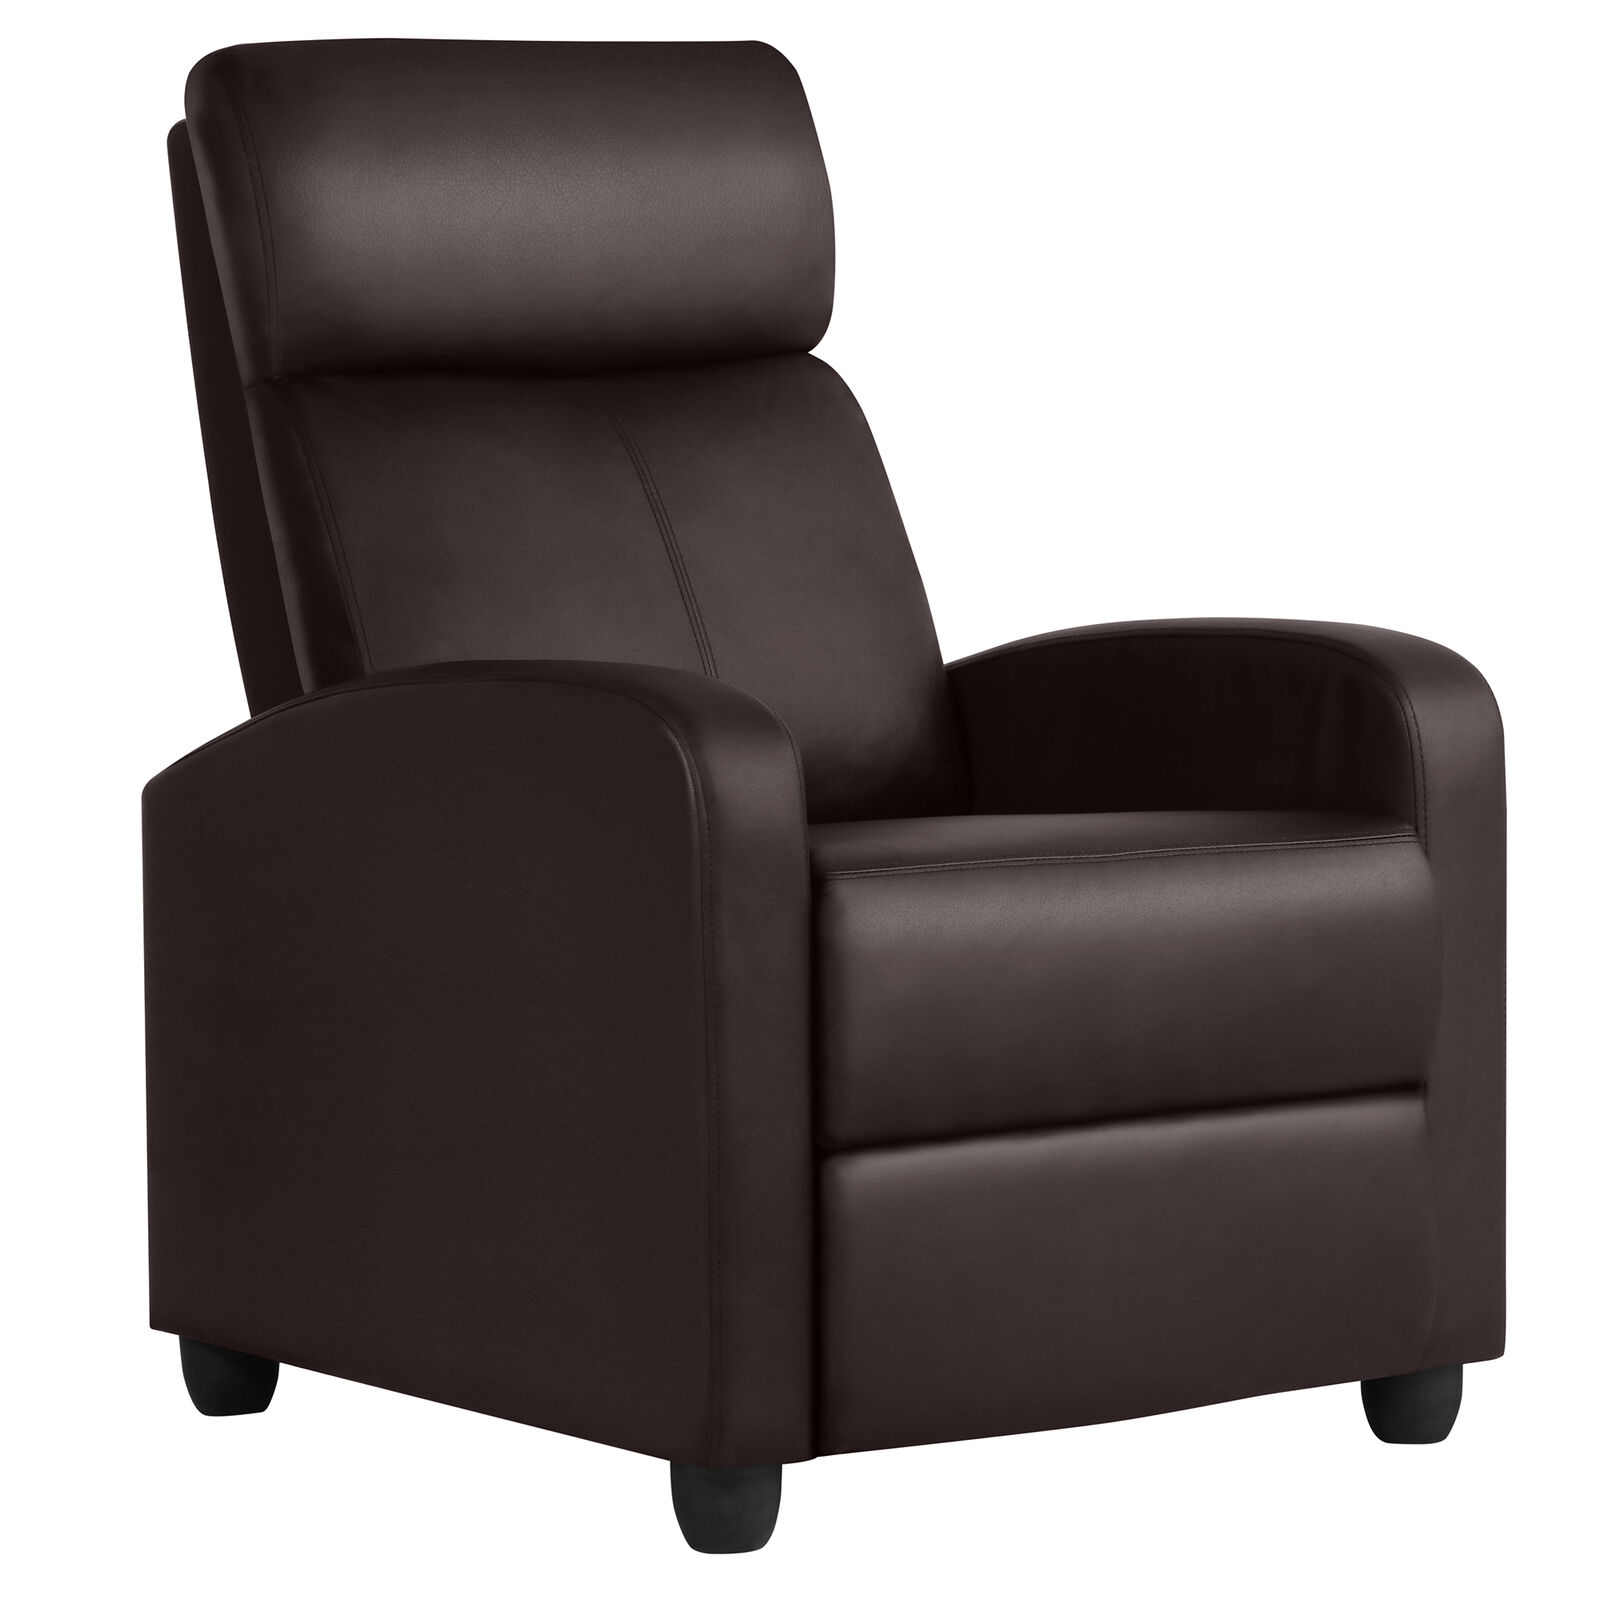 Black Sofa Bed W Cup Holder Home